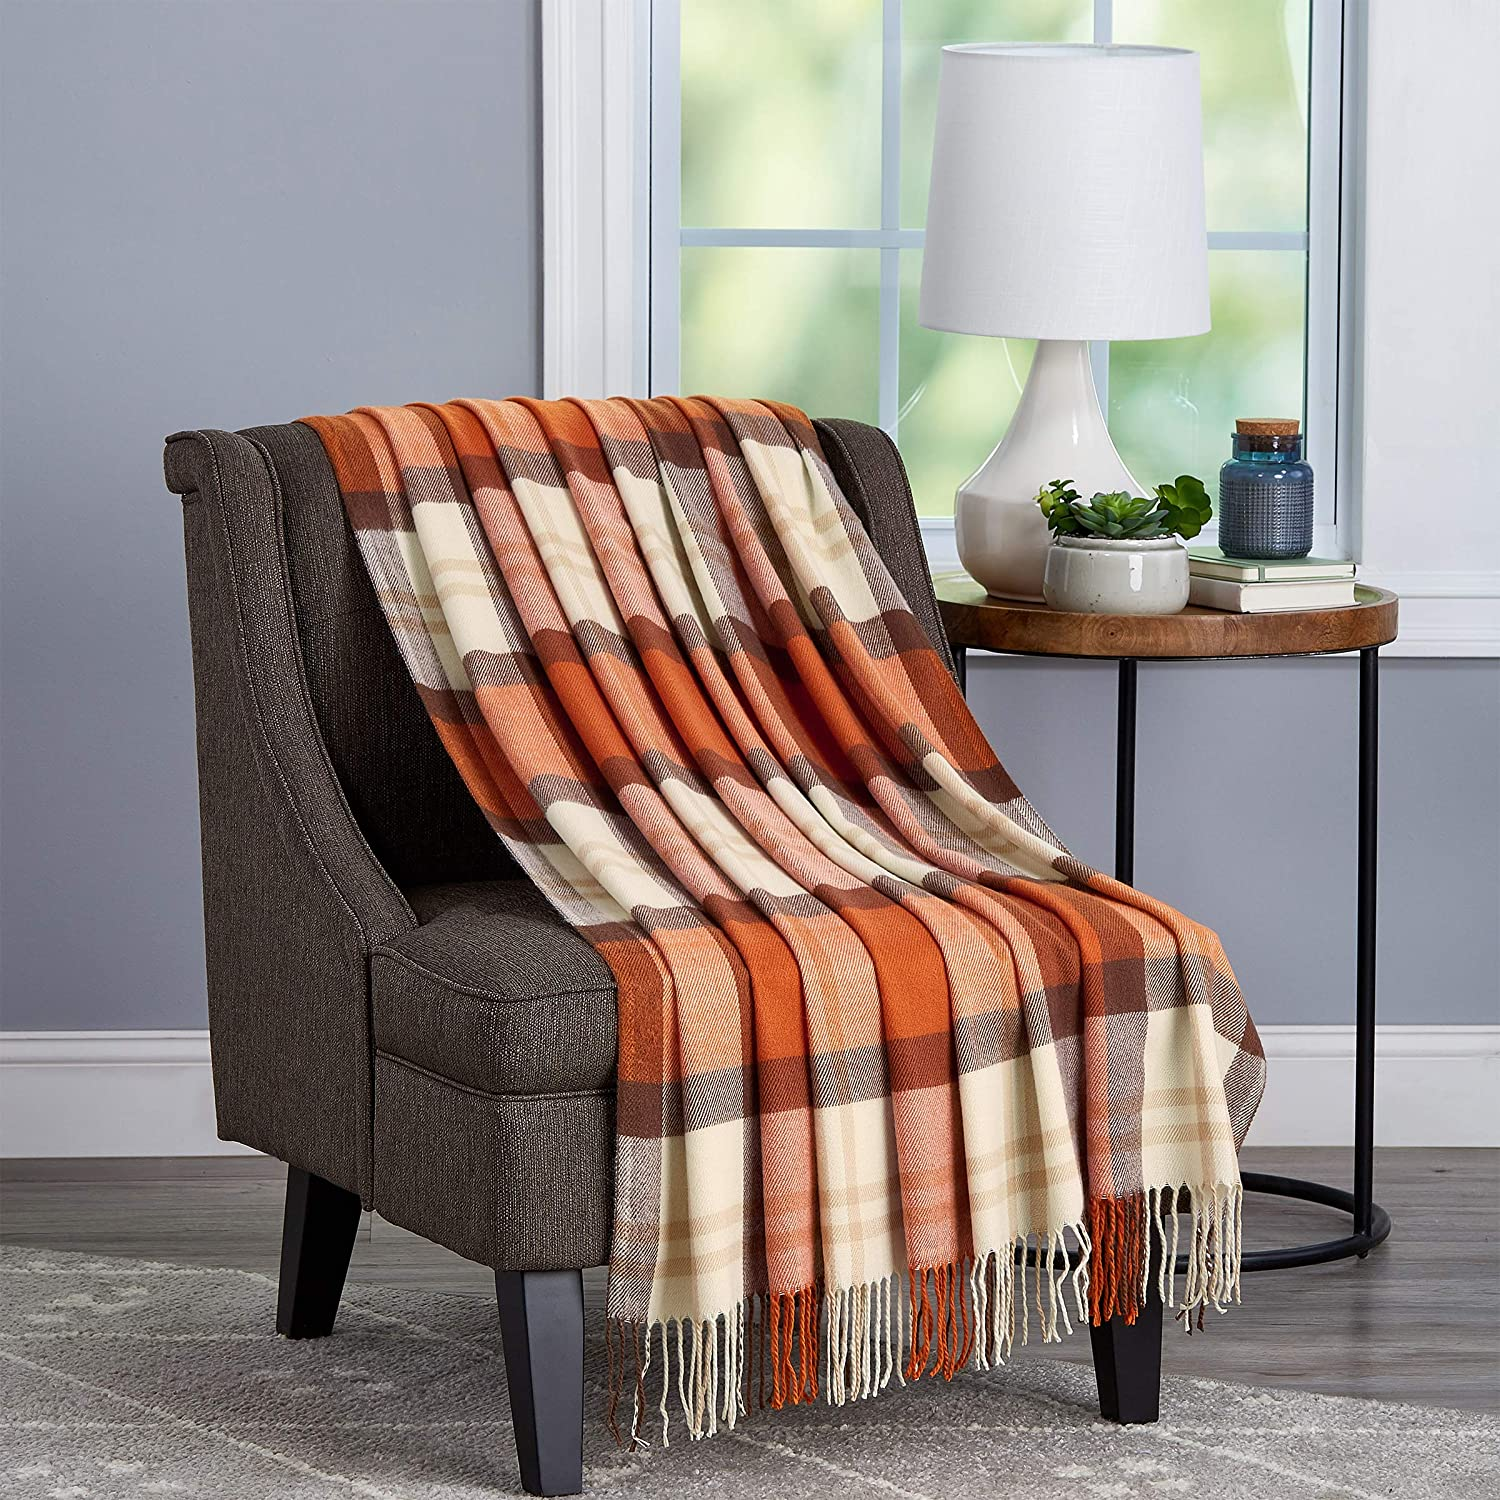 Lavish Home Collection Soft Blanket-Oversized, Luxuriously Fluffy, Vintage Look and Cashmere-Like Woven Acrylic - Breathable and Stylish Throws, Spice Plaid